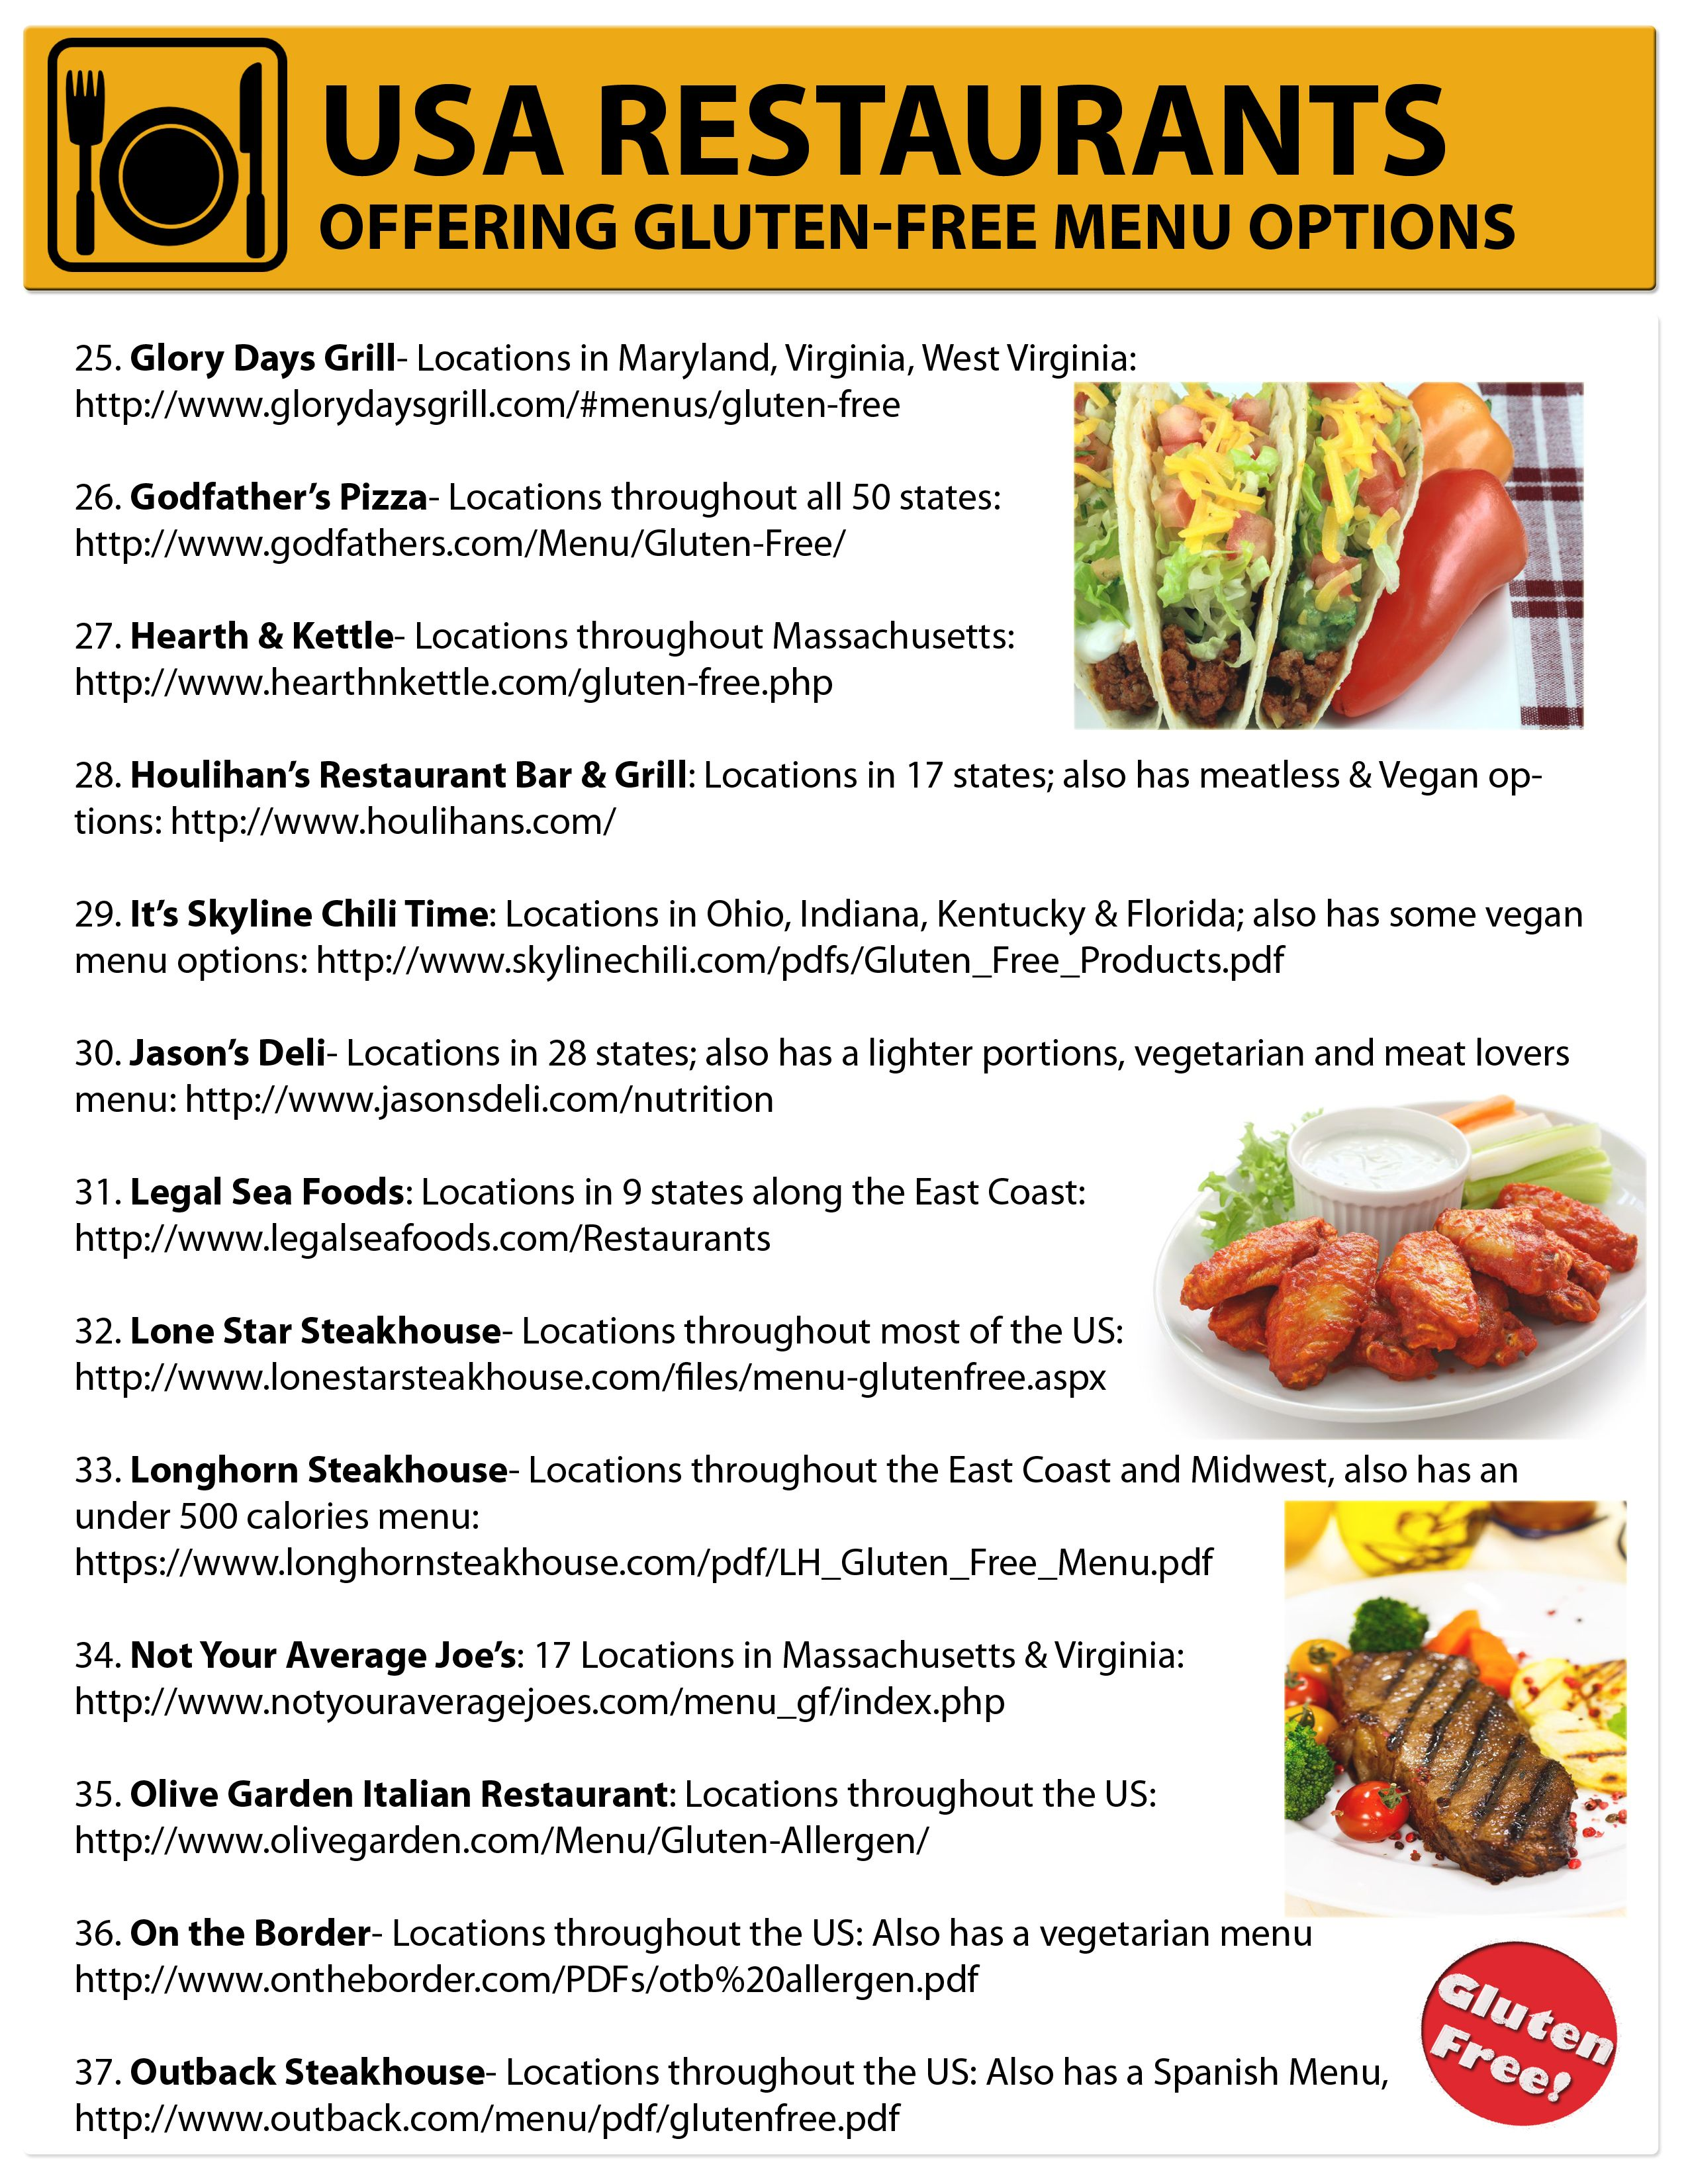 Lone star steakhouse gluten free menu - Abercrombie and